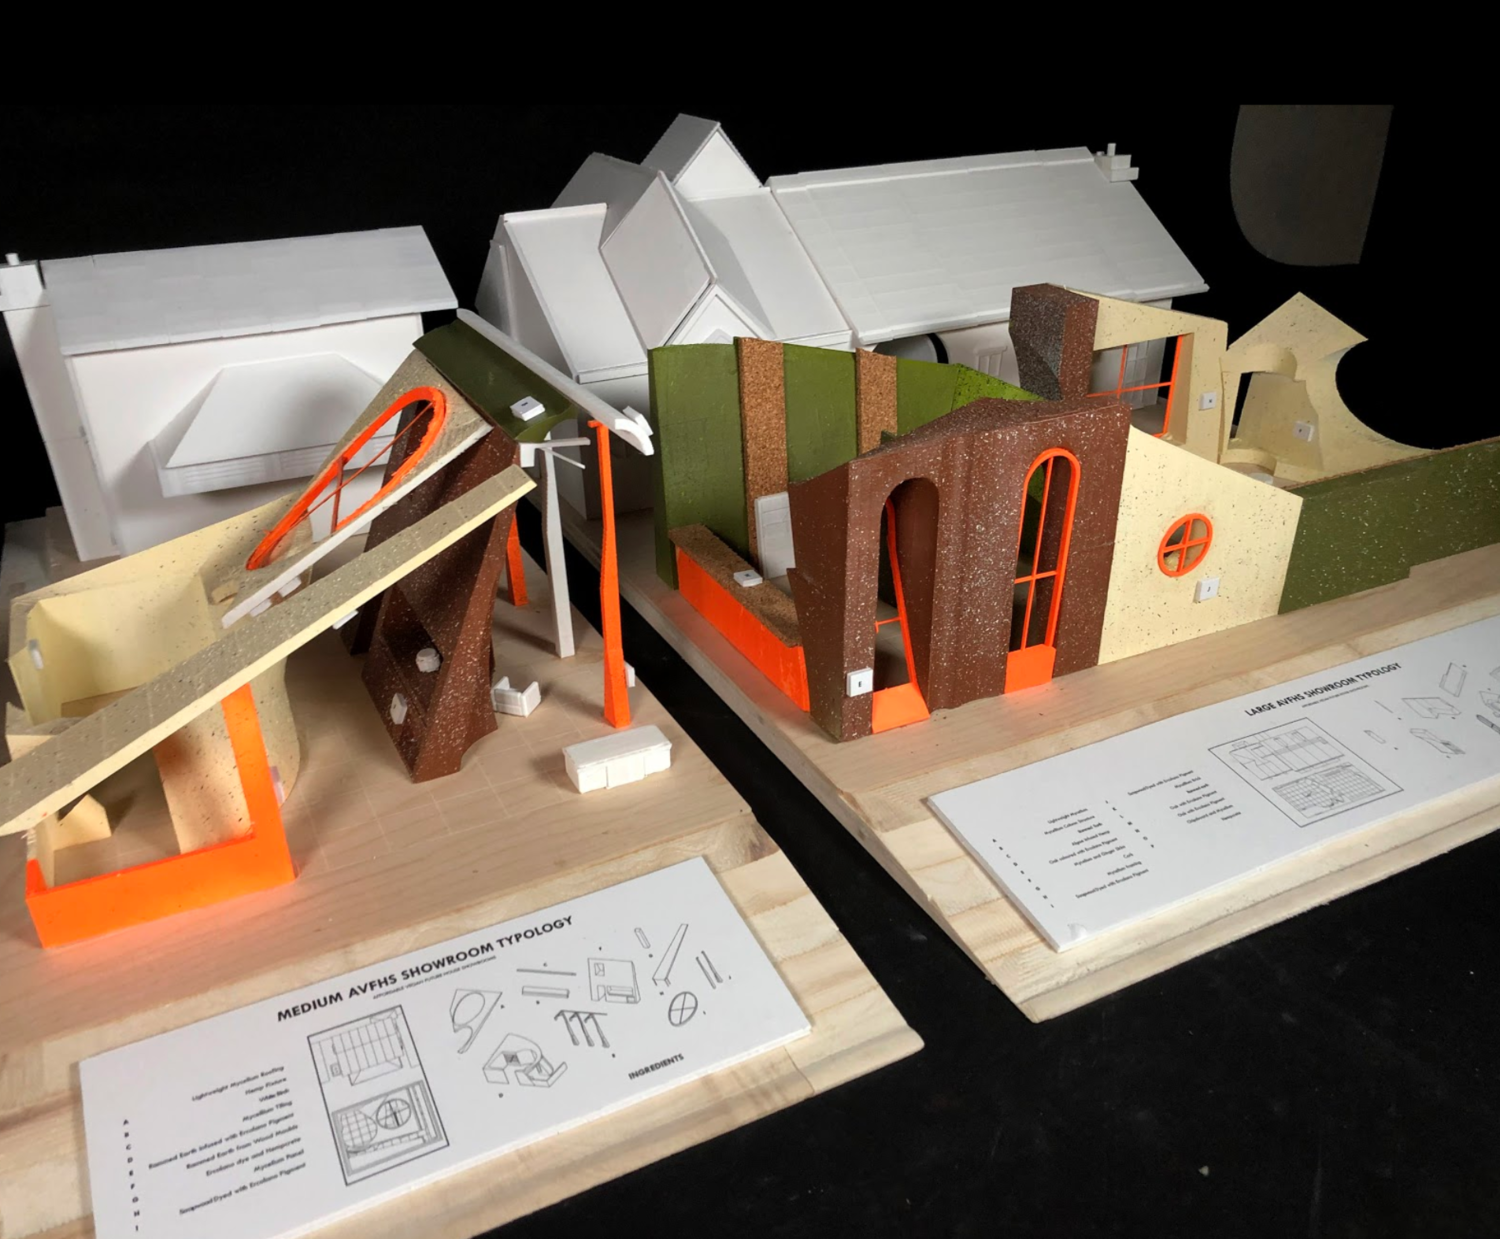 These models were a set of three using plywood as the base milled using a CNC machine